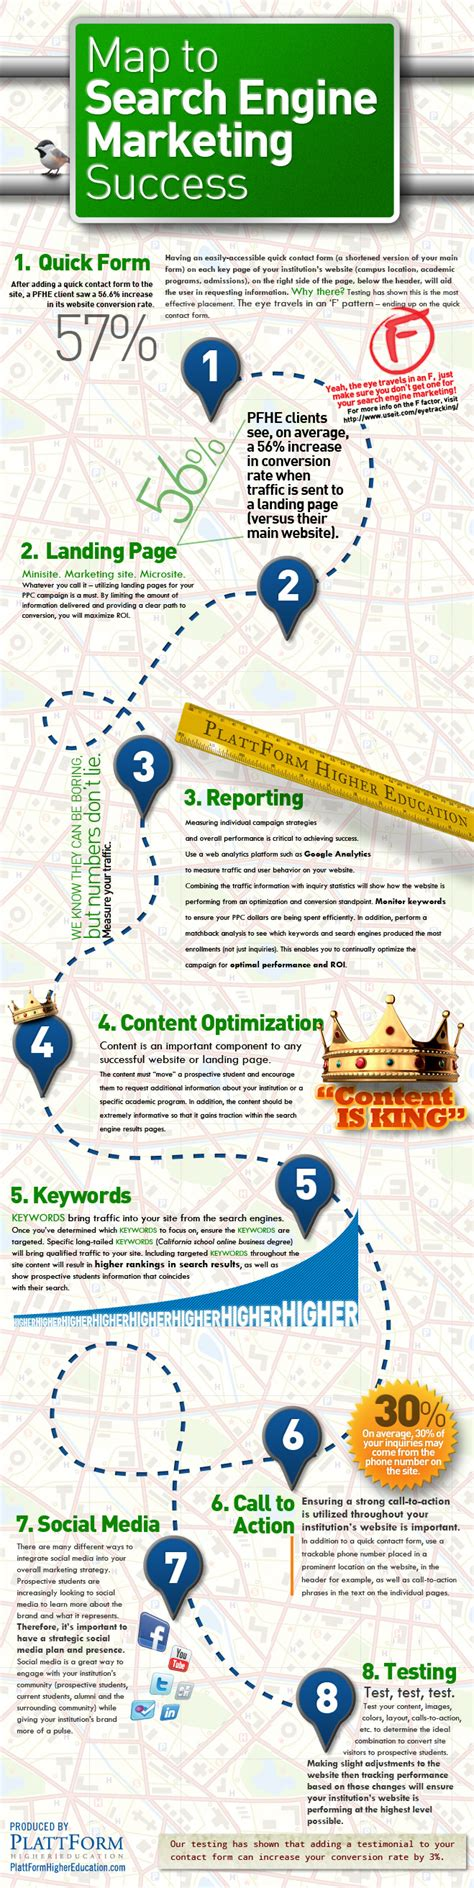 Search Engine Marketing by Map To Search Engine Marketing Success Infographic